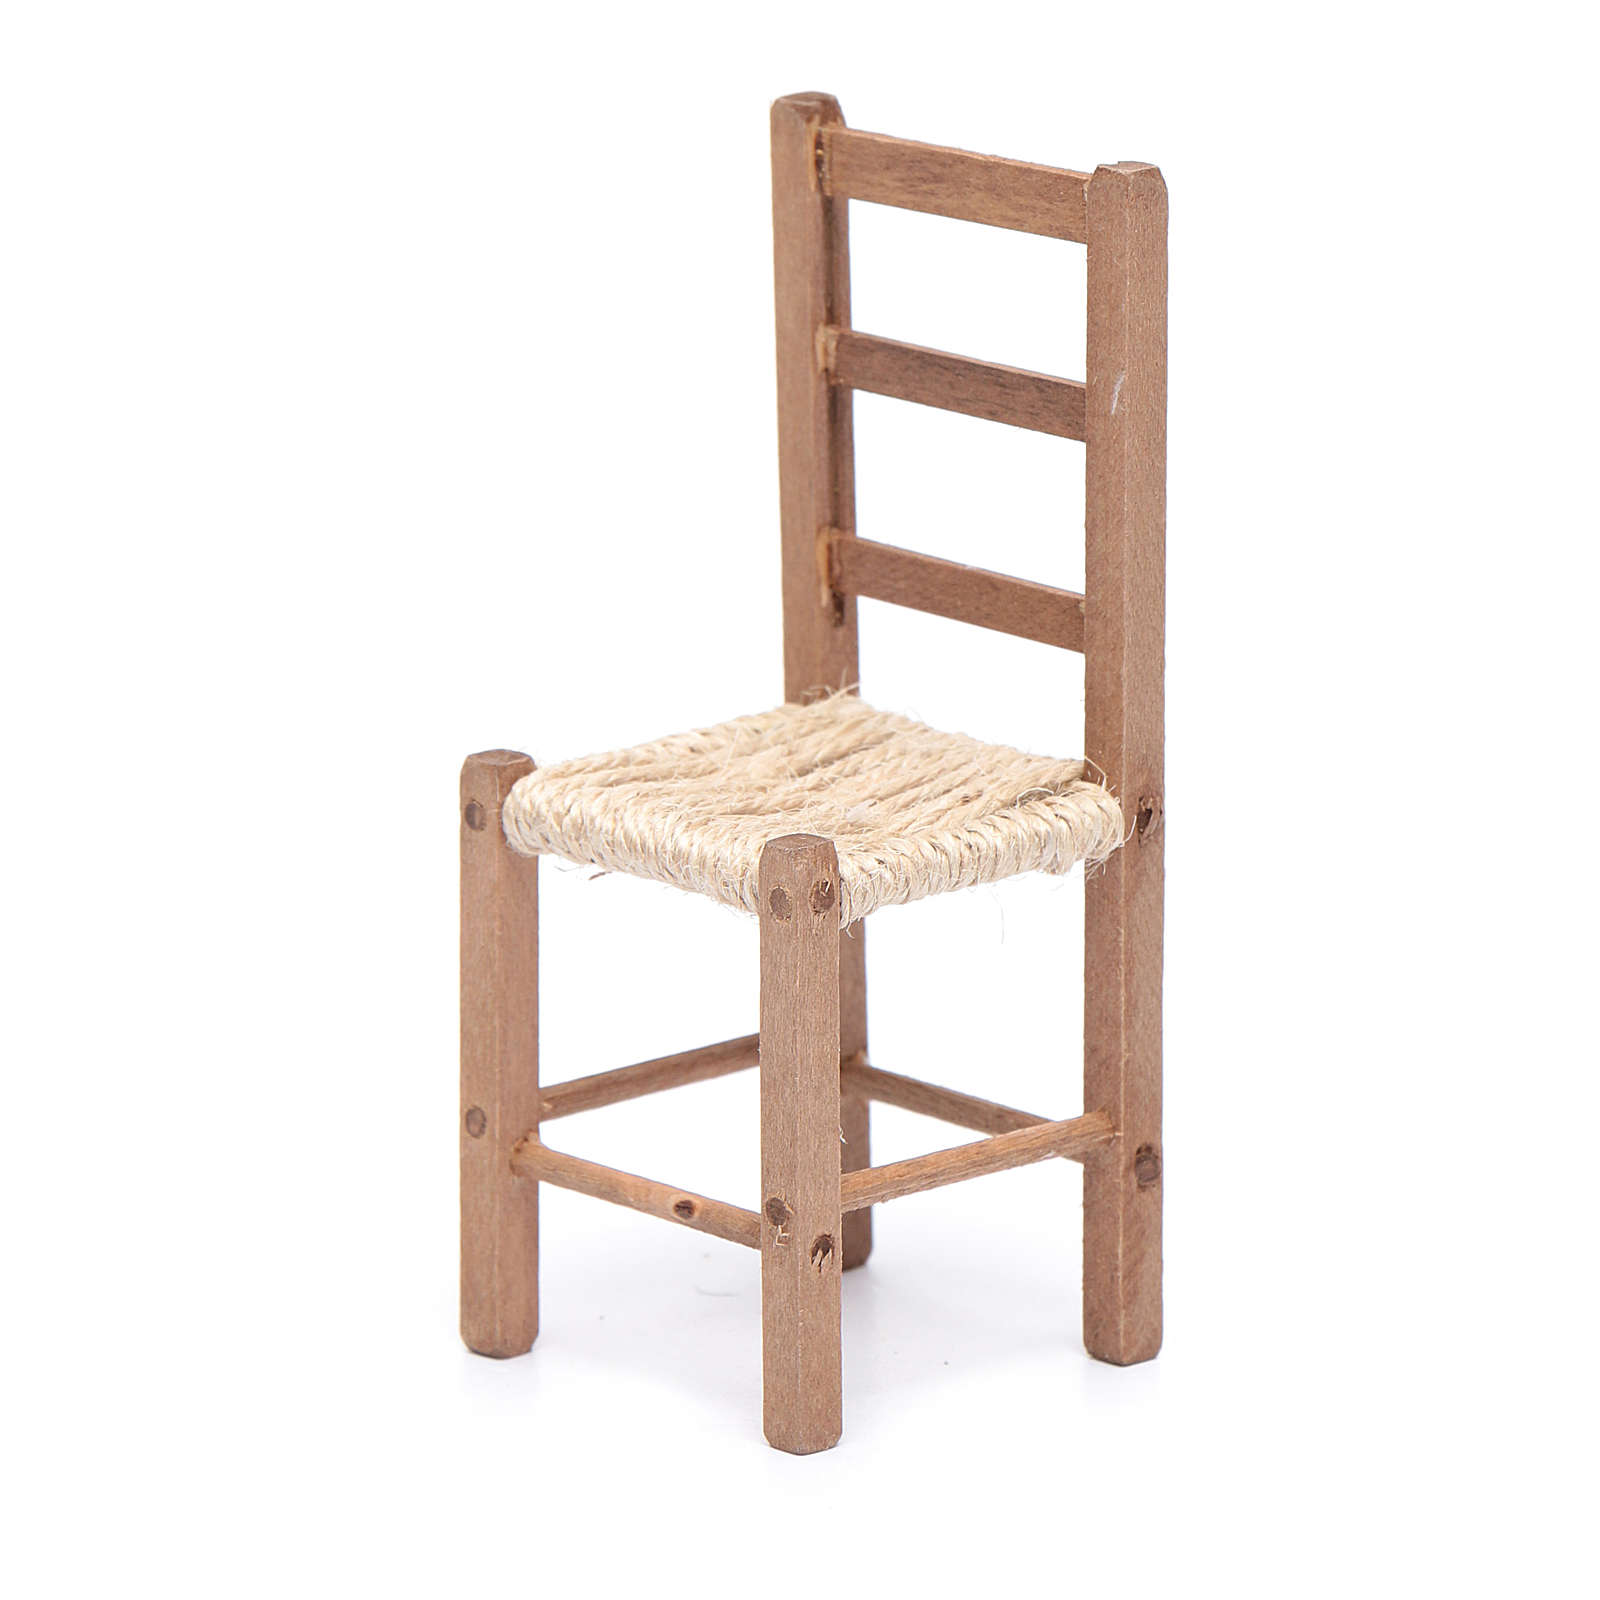 Wooden chair and rope 11 cm for Neapolitan nativity scene 4